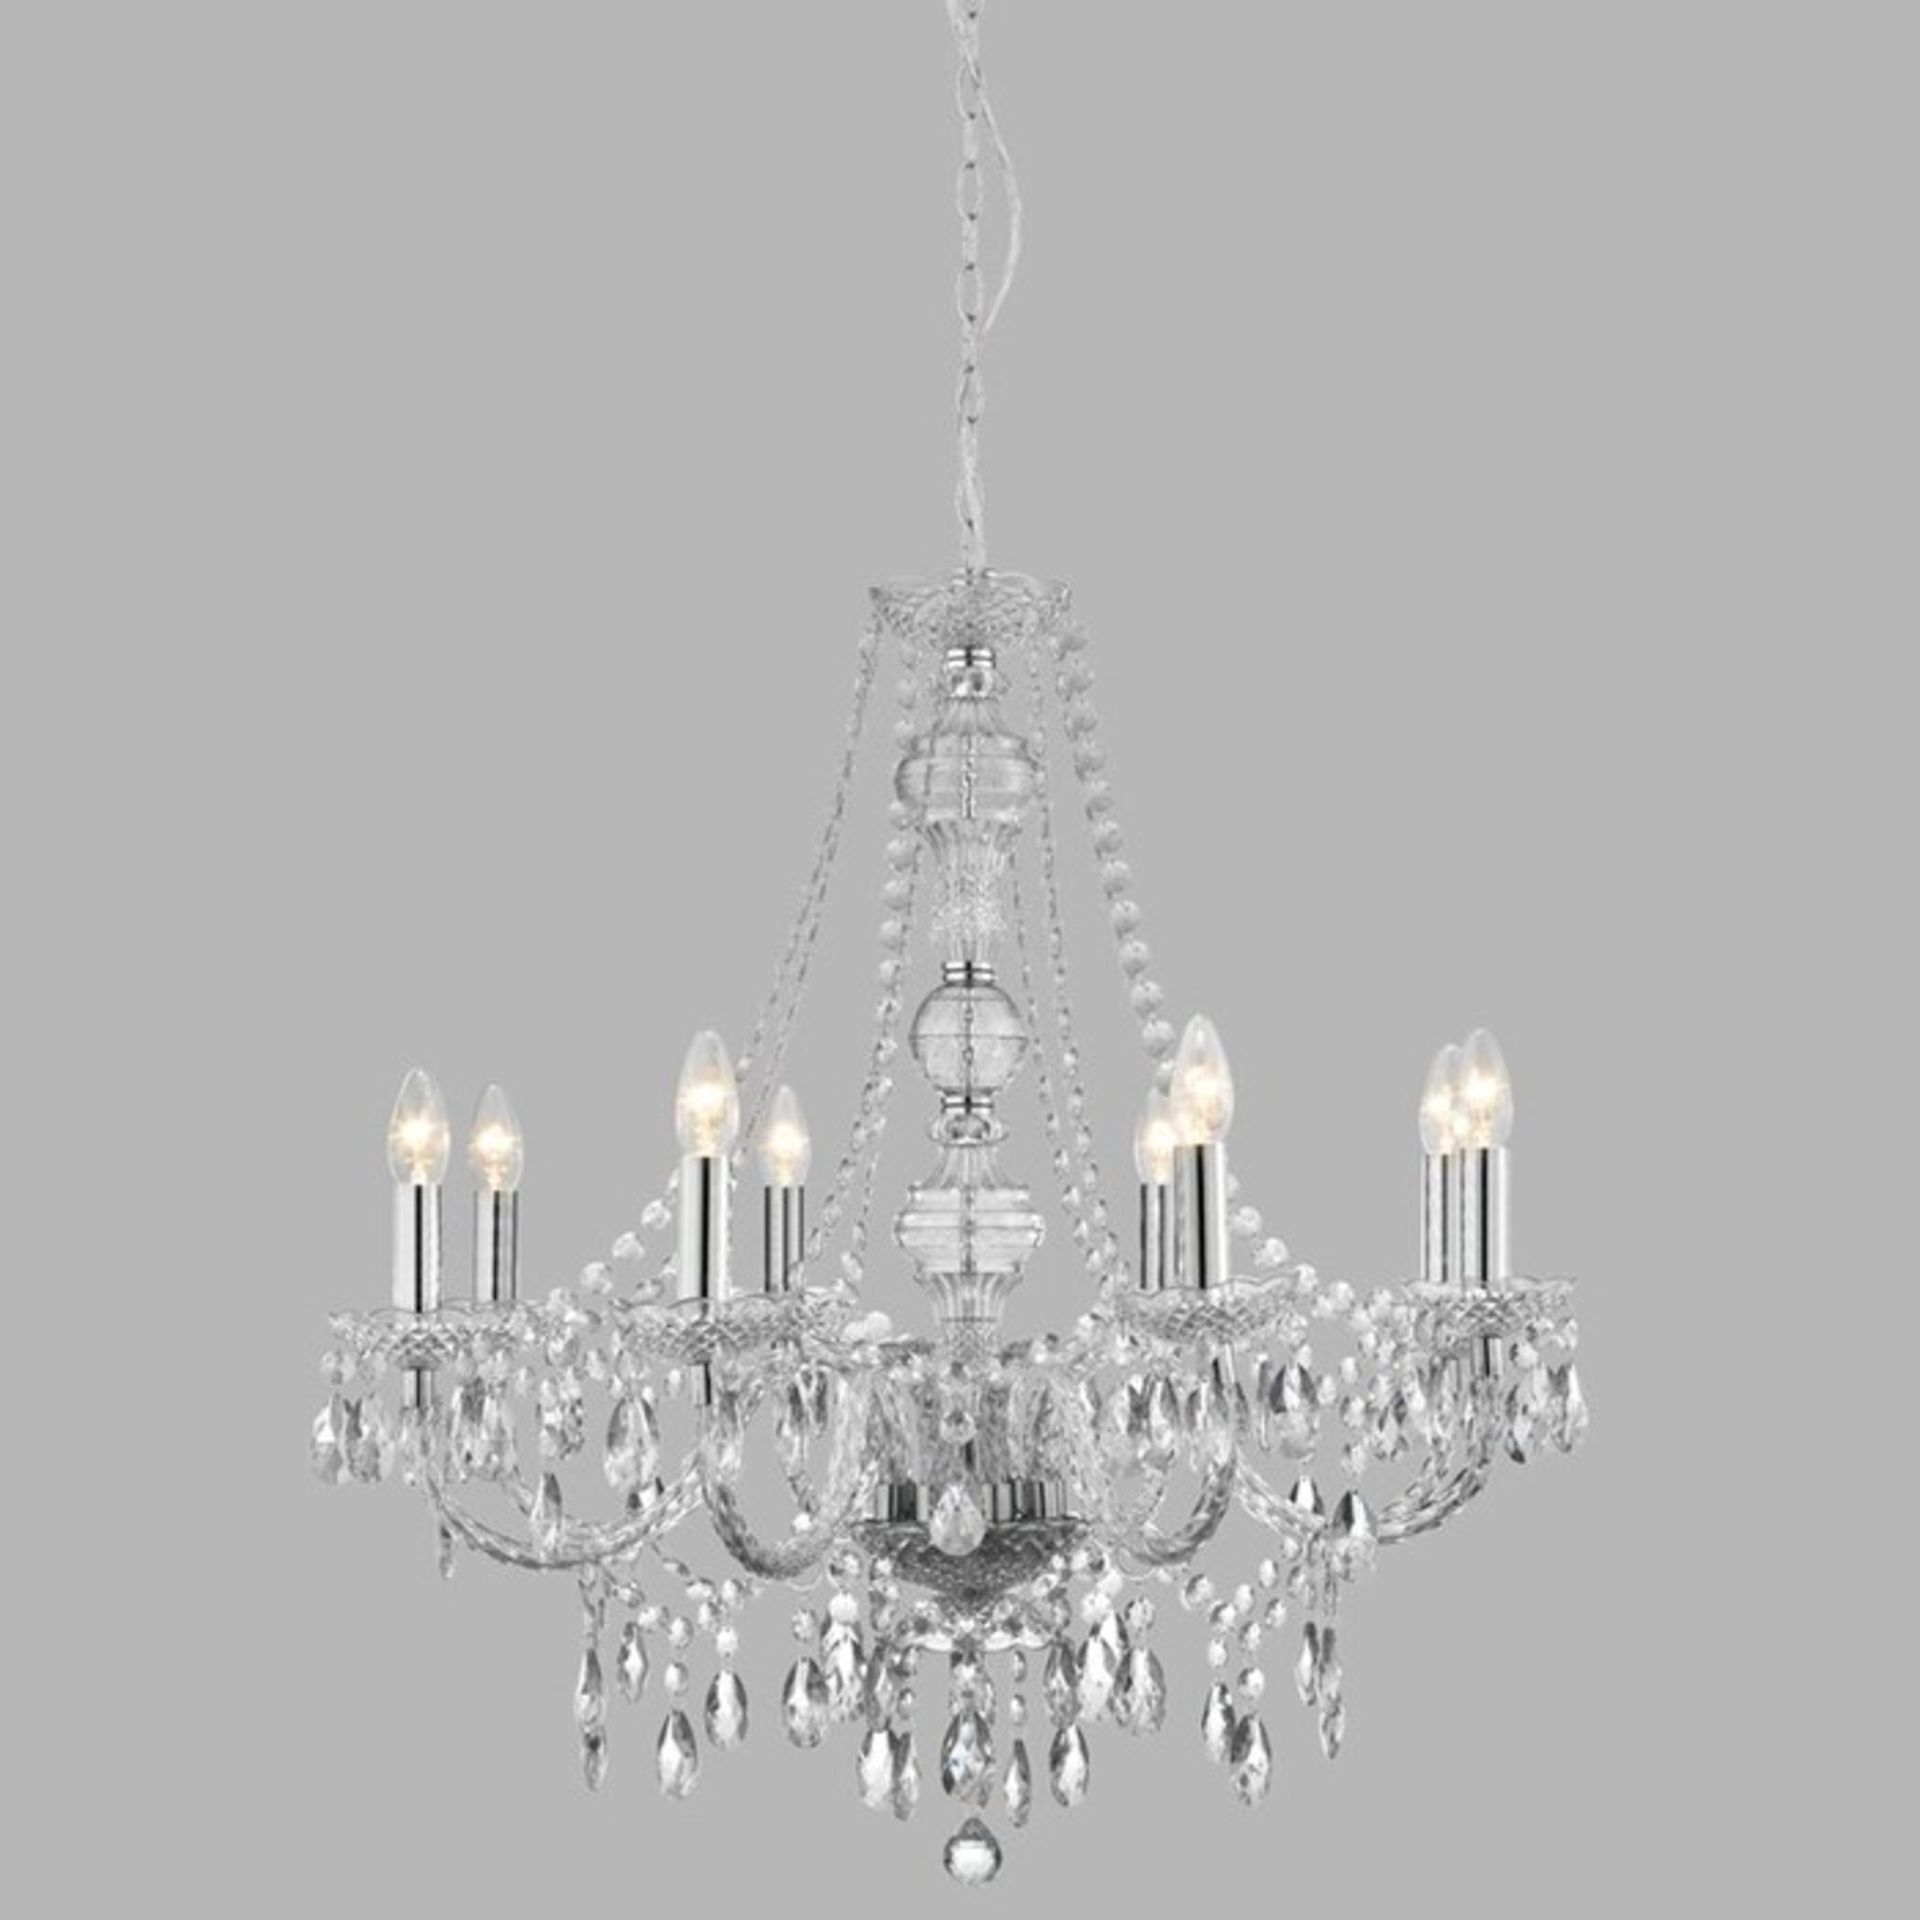 Fairmont Park, Moonstone 8-Light Candle-Style Chandelier (SMALL CRACK) - RRP £159.99 (HOHA1663 -